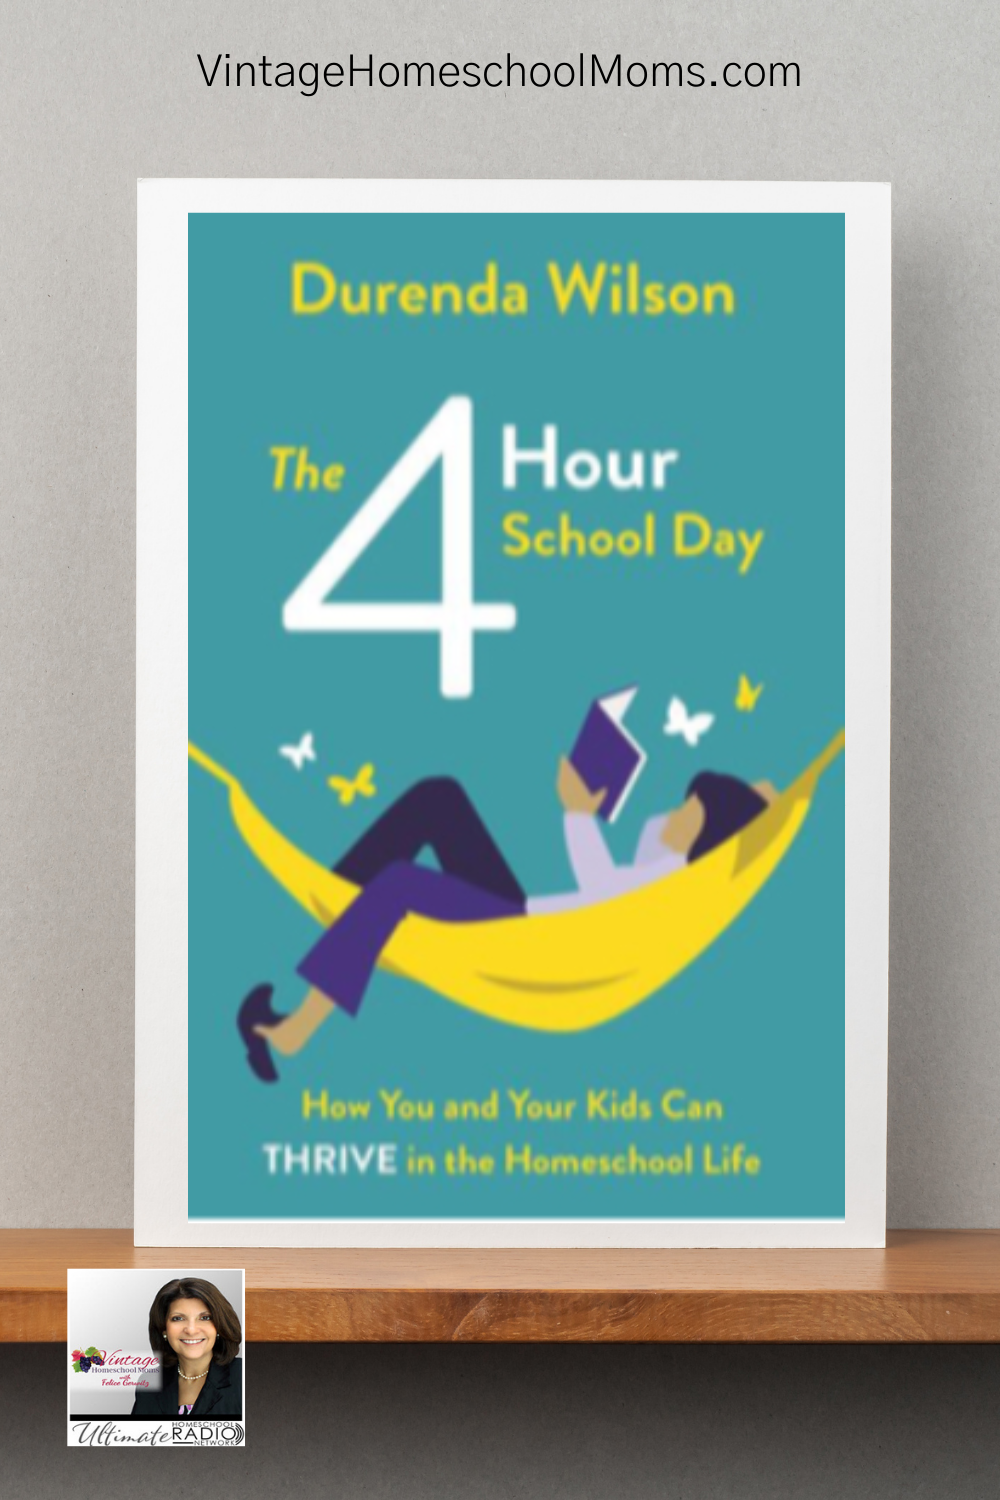 Have you considered a four hour school day? Well if not, my guest today will share how she trimmed the fat of her school day. How did she do this? Listen to find out.